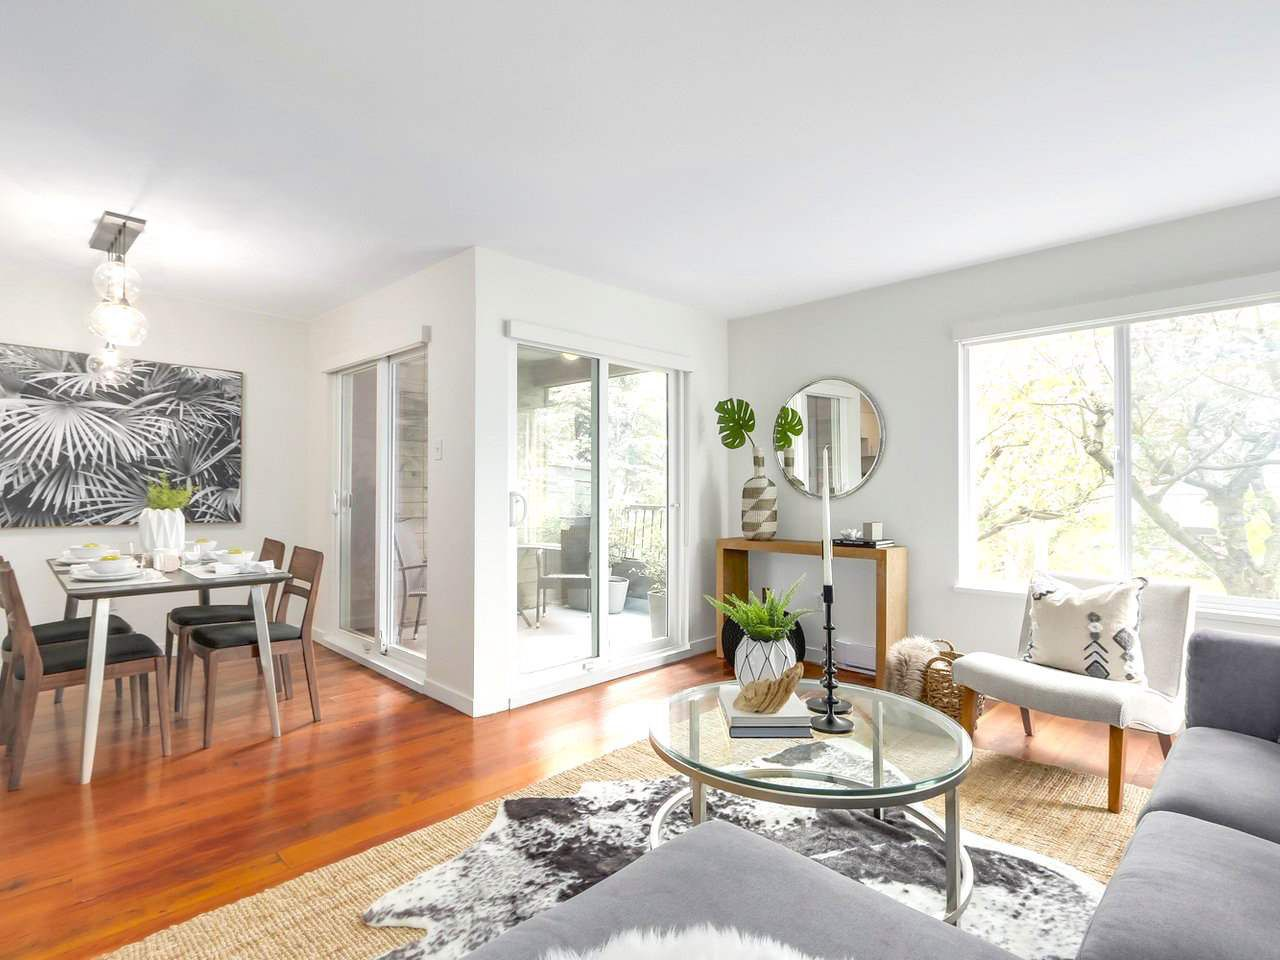 Main Photo: 204 2224 ETON Street in Vancouver: Hastings Condo for sale (Vancouver East)  : MLS®# R2265156